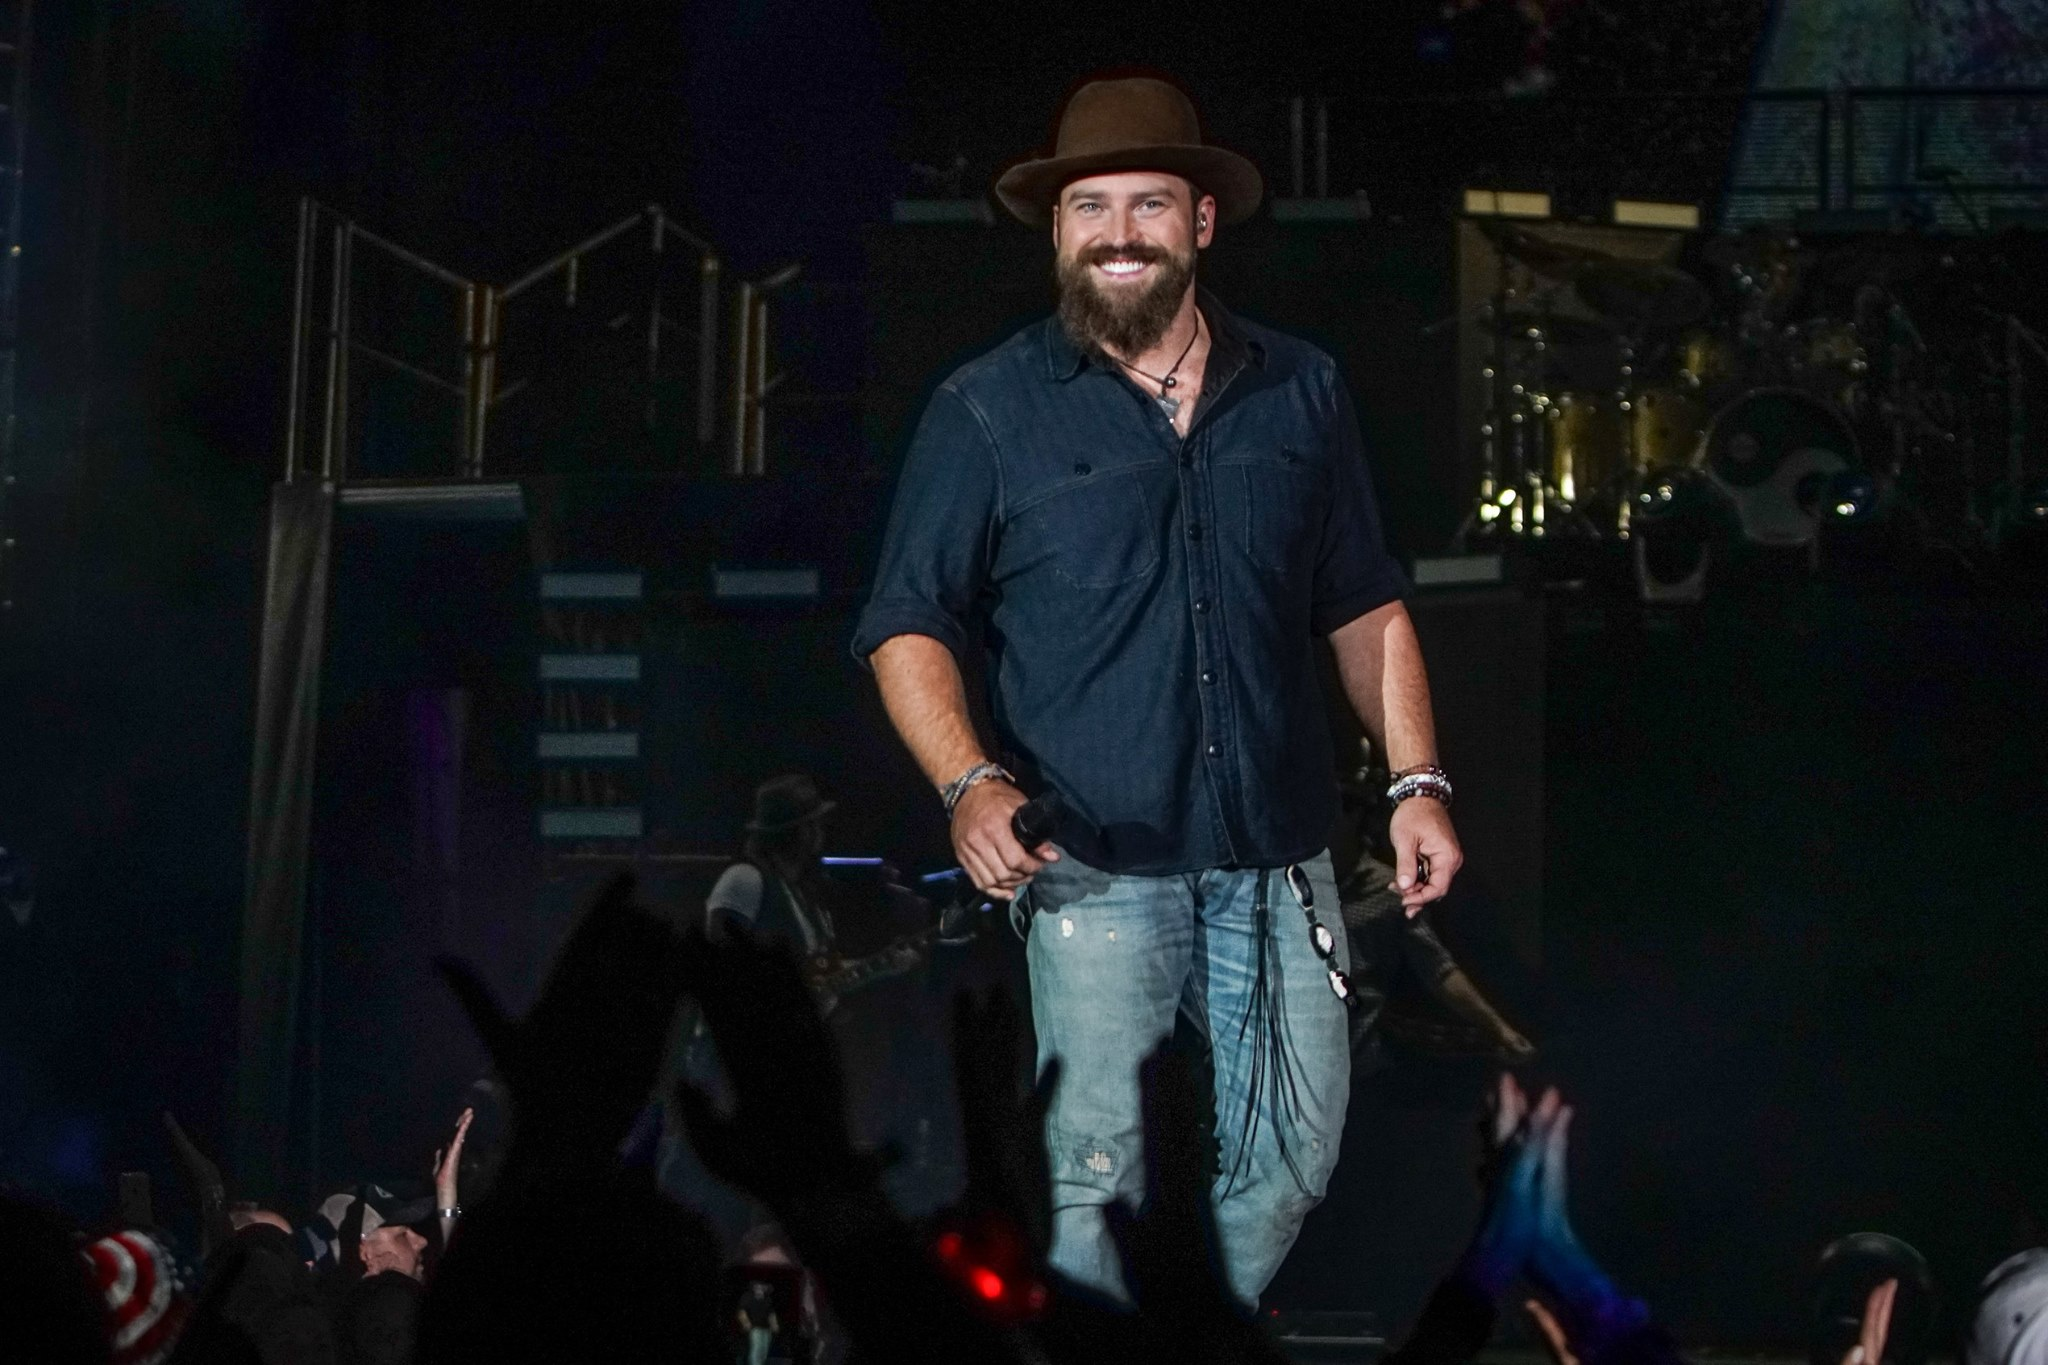 Zac Brown smiling